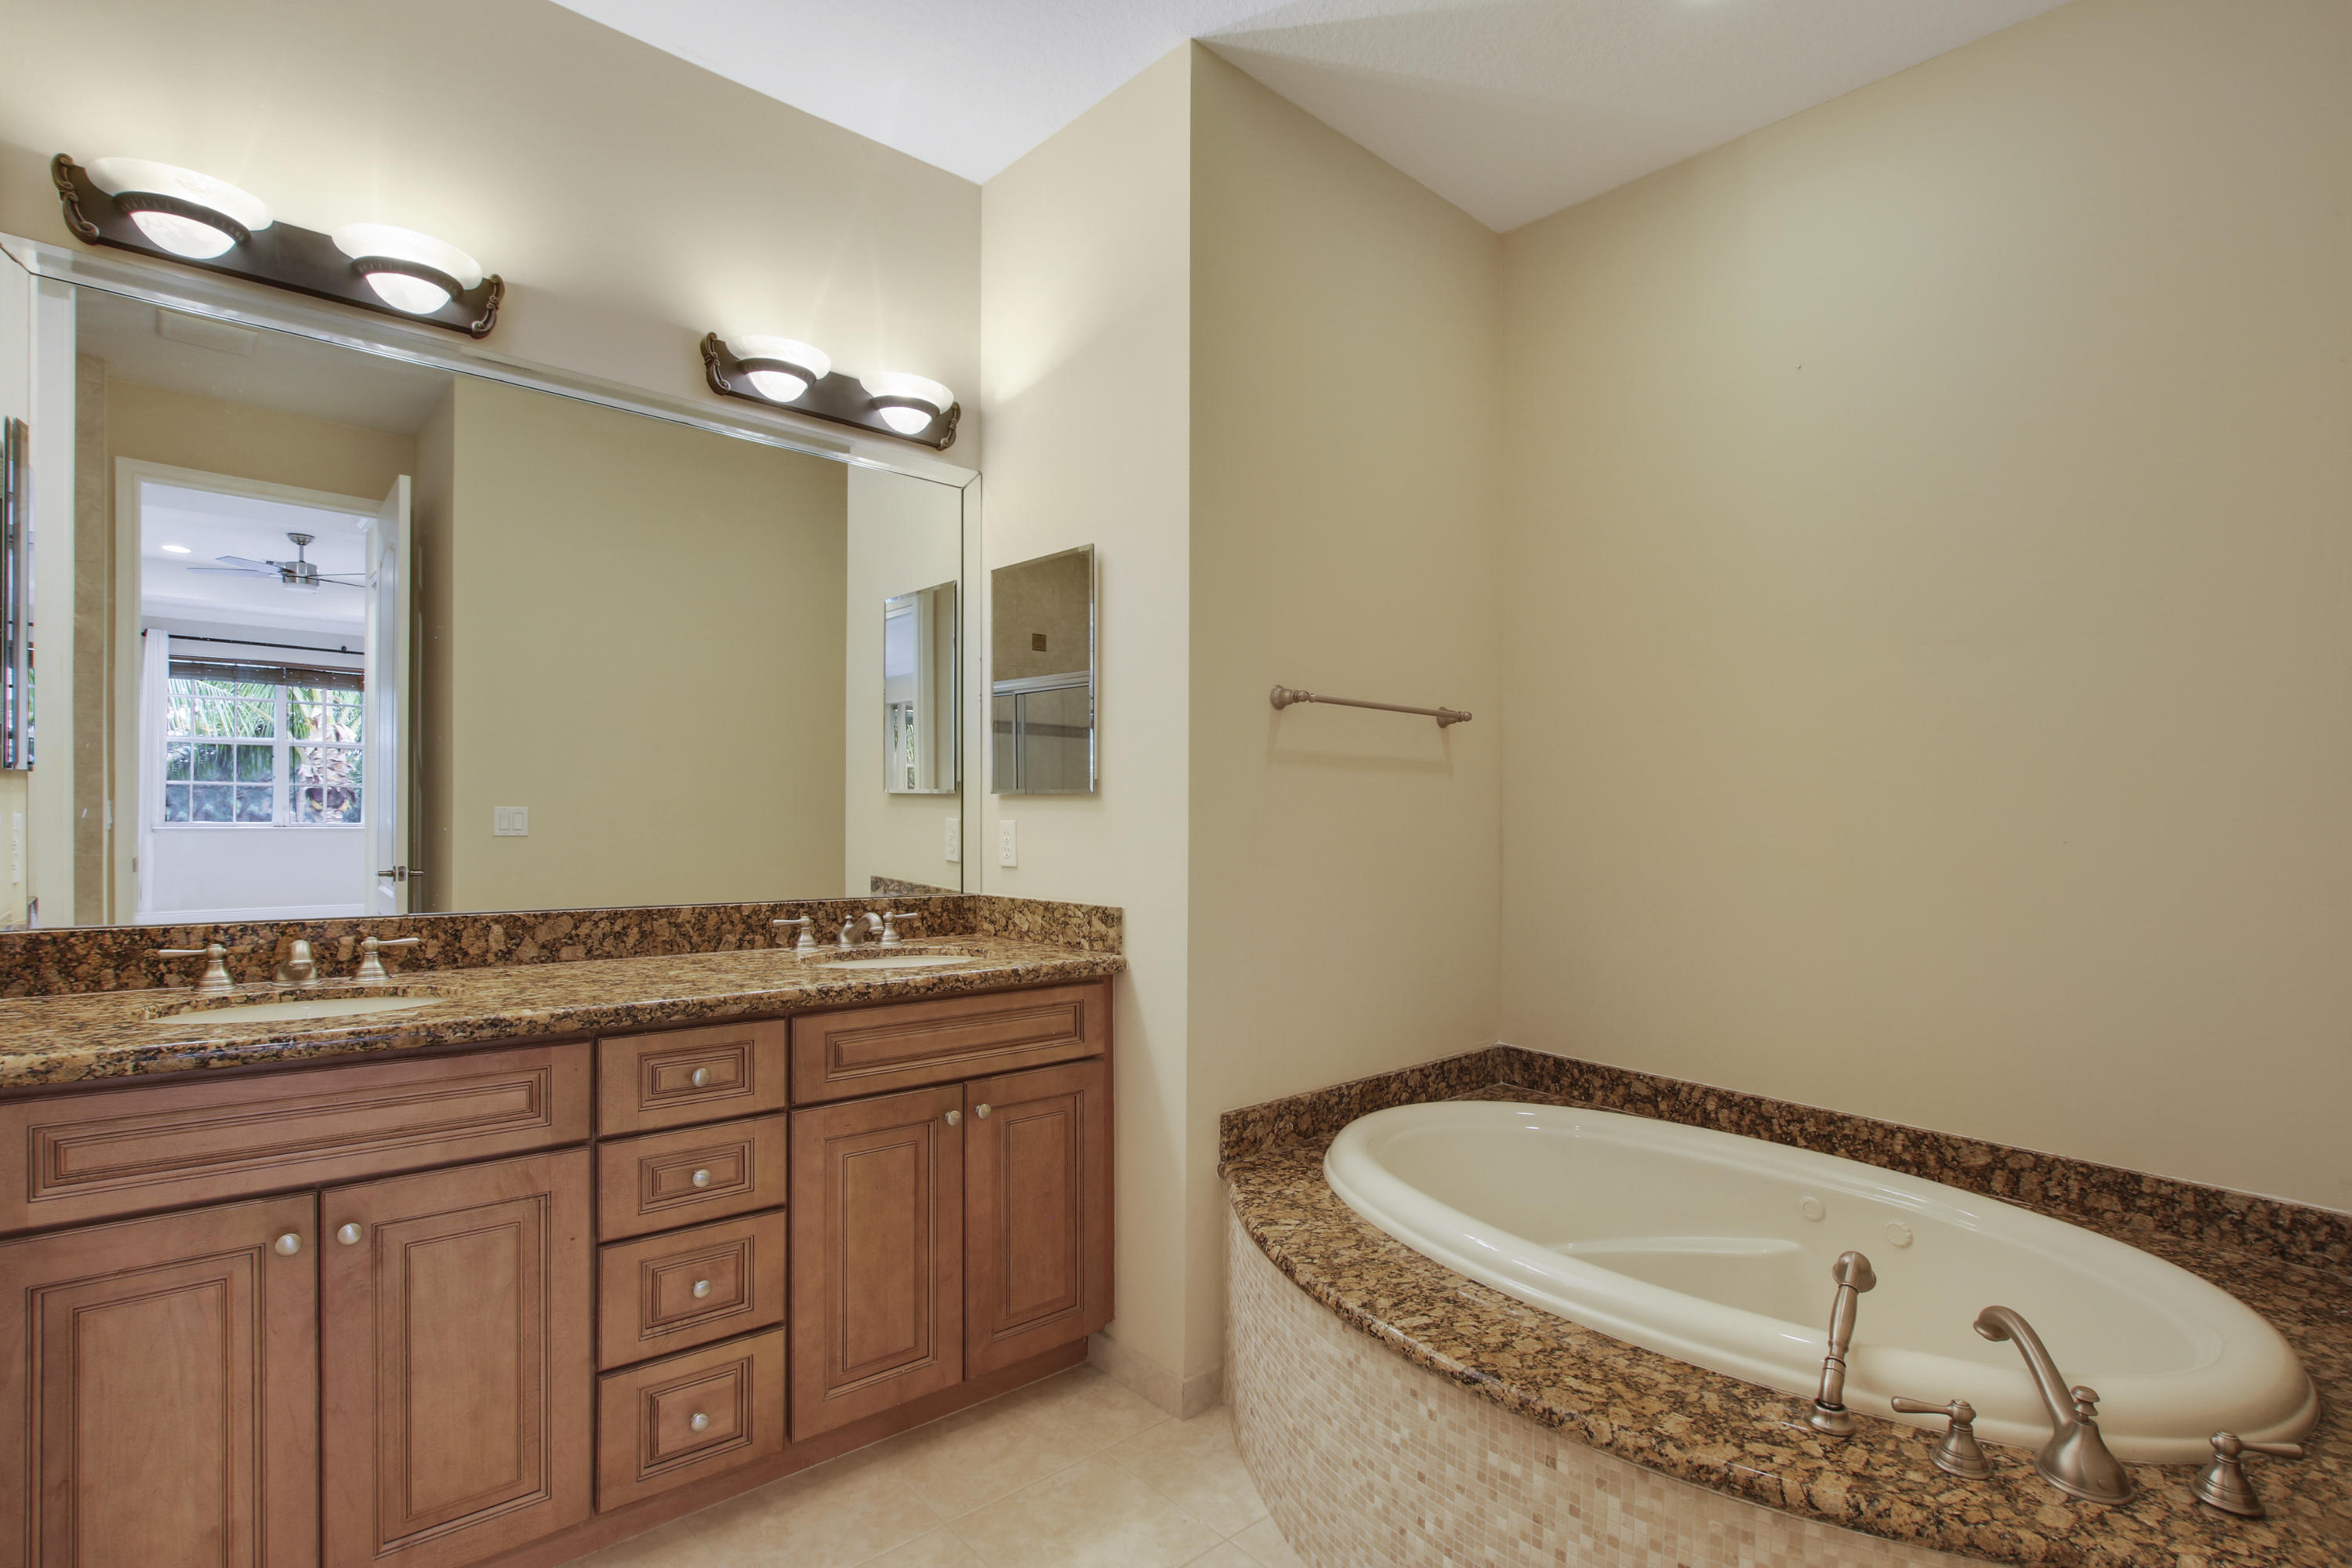 CIELO TOWNHOMES AT SHOPS OF DONALD ROSS  LT 3 BLK D7